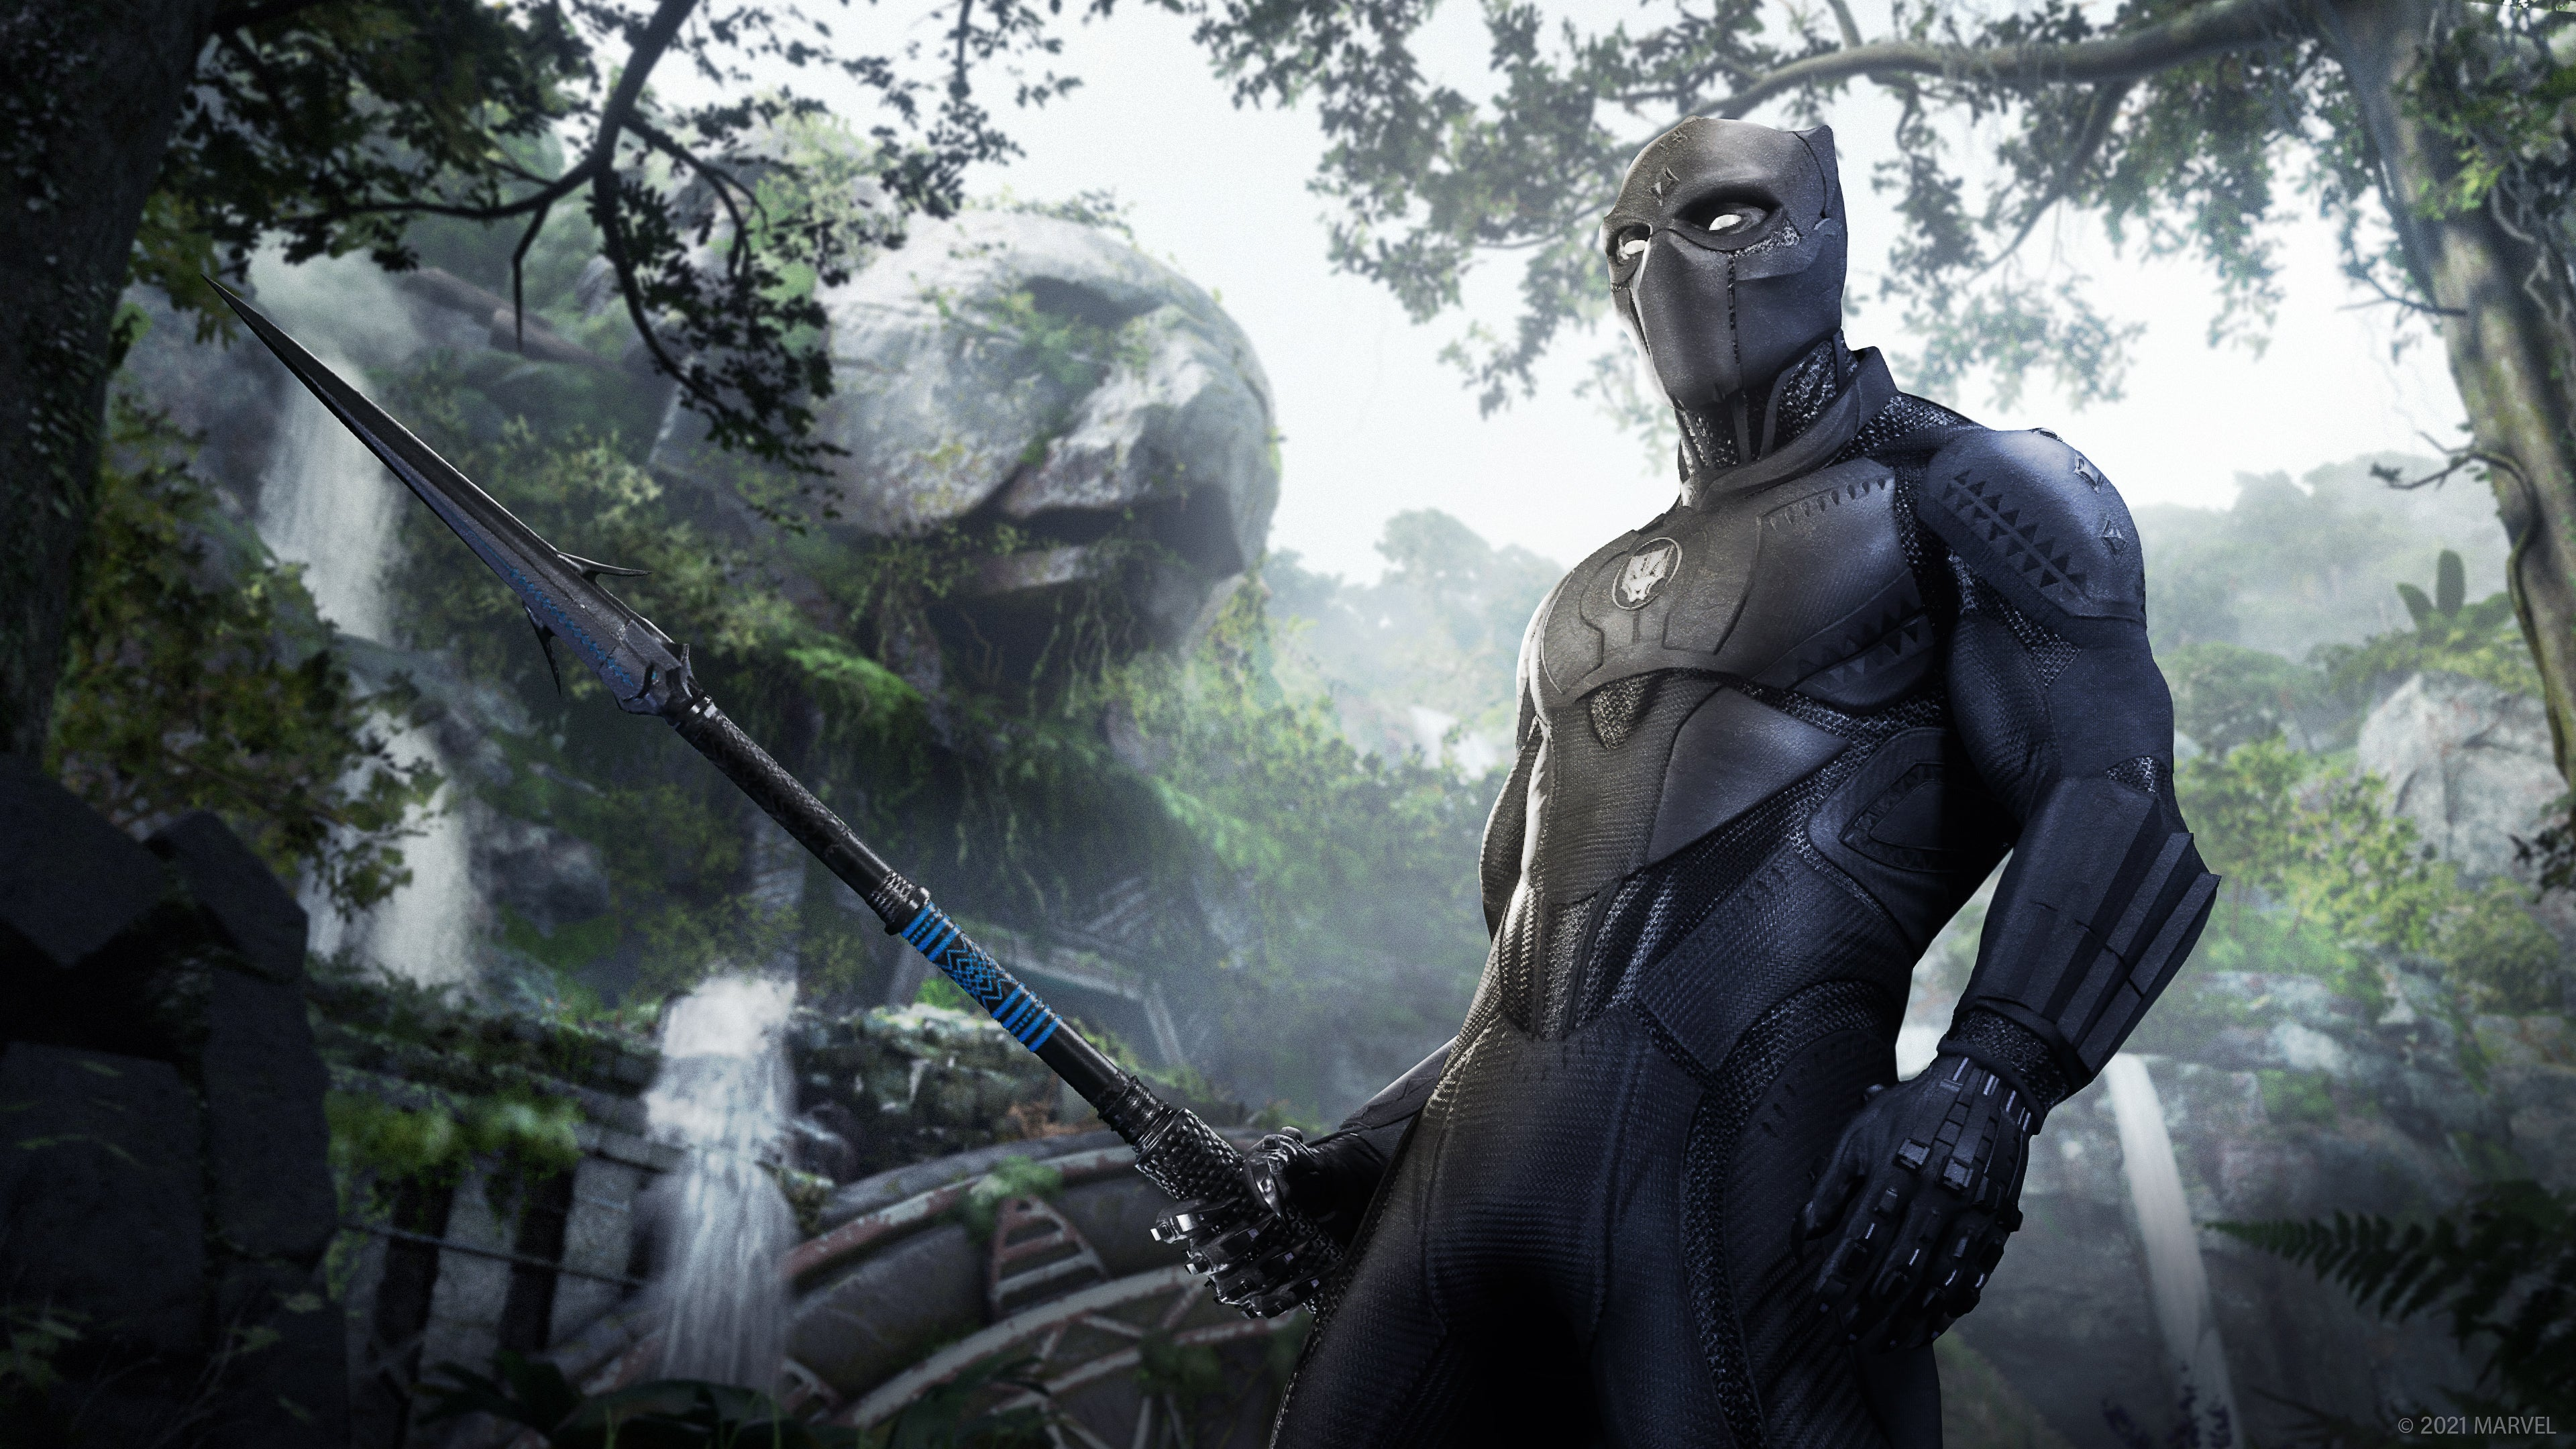 Concept of Black Panther, standing at the base of a ruined temple. The head of a giant panther is carved into the top of the temple, cutting out of the jungle brush. Waterfalls pour down the sides of the ruins. Black Panther looks off into the jungle, armed with his trust spear.